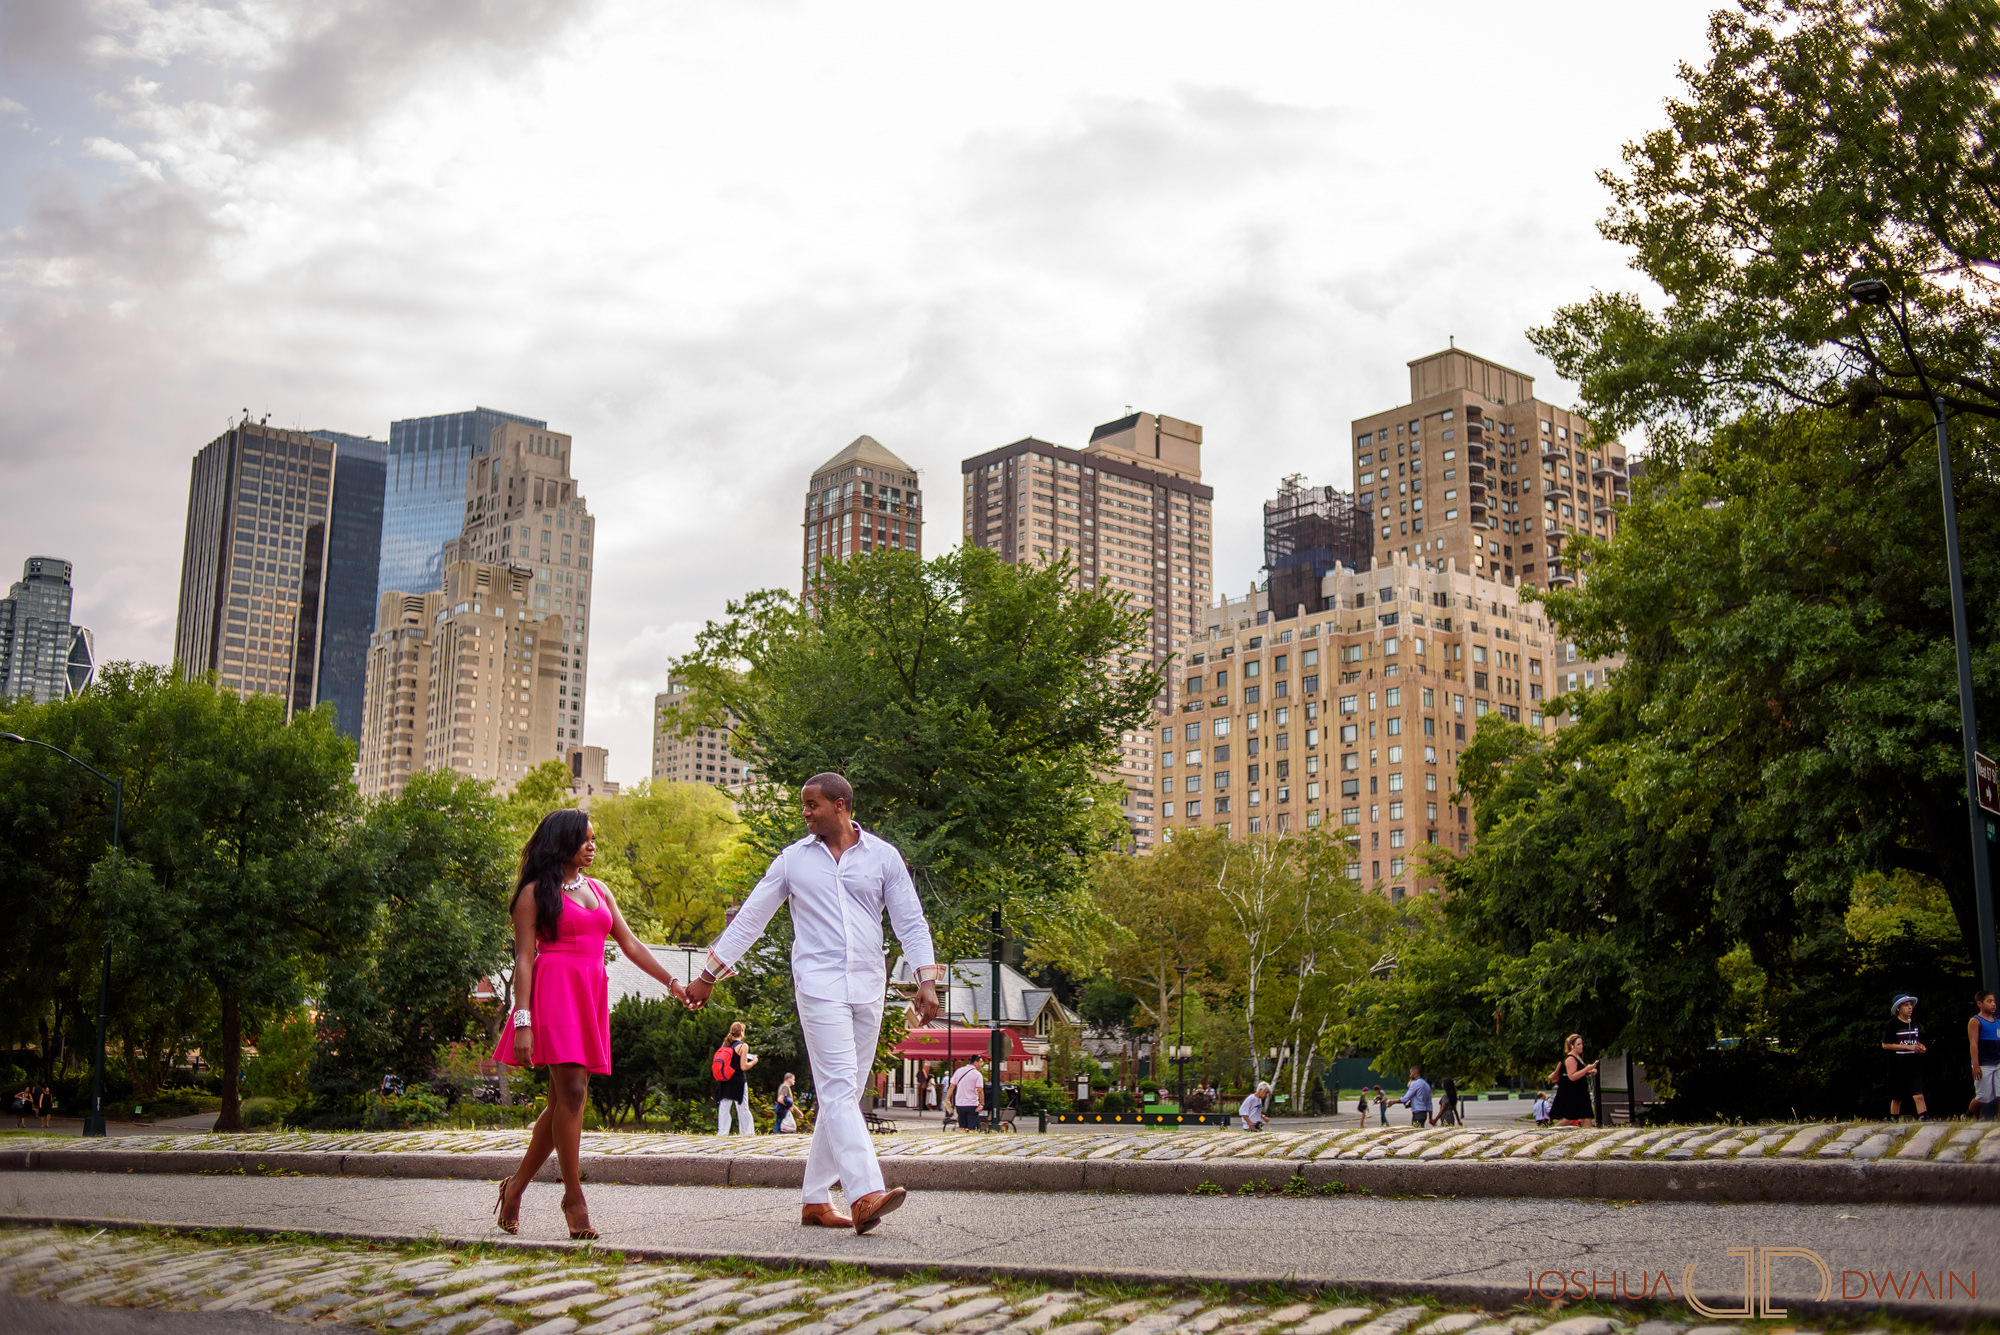 sandra-otwan-003-central-park-lincoln-center-new-yorkpre-wedding-photos-joshua-dwain